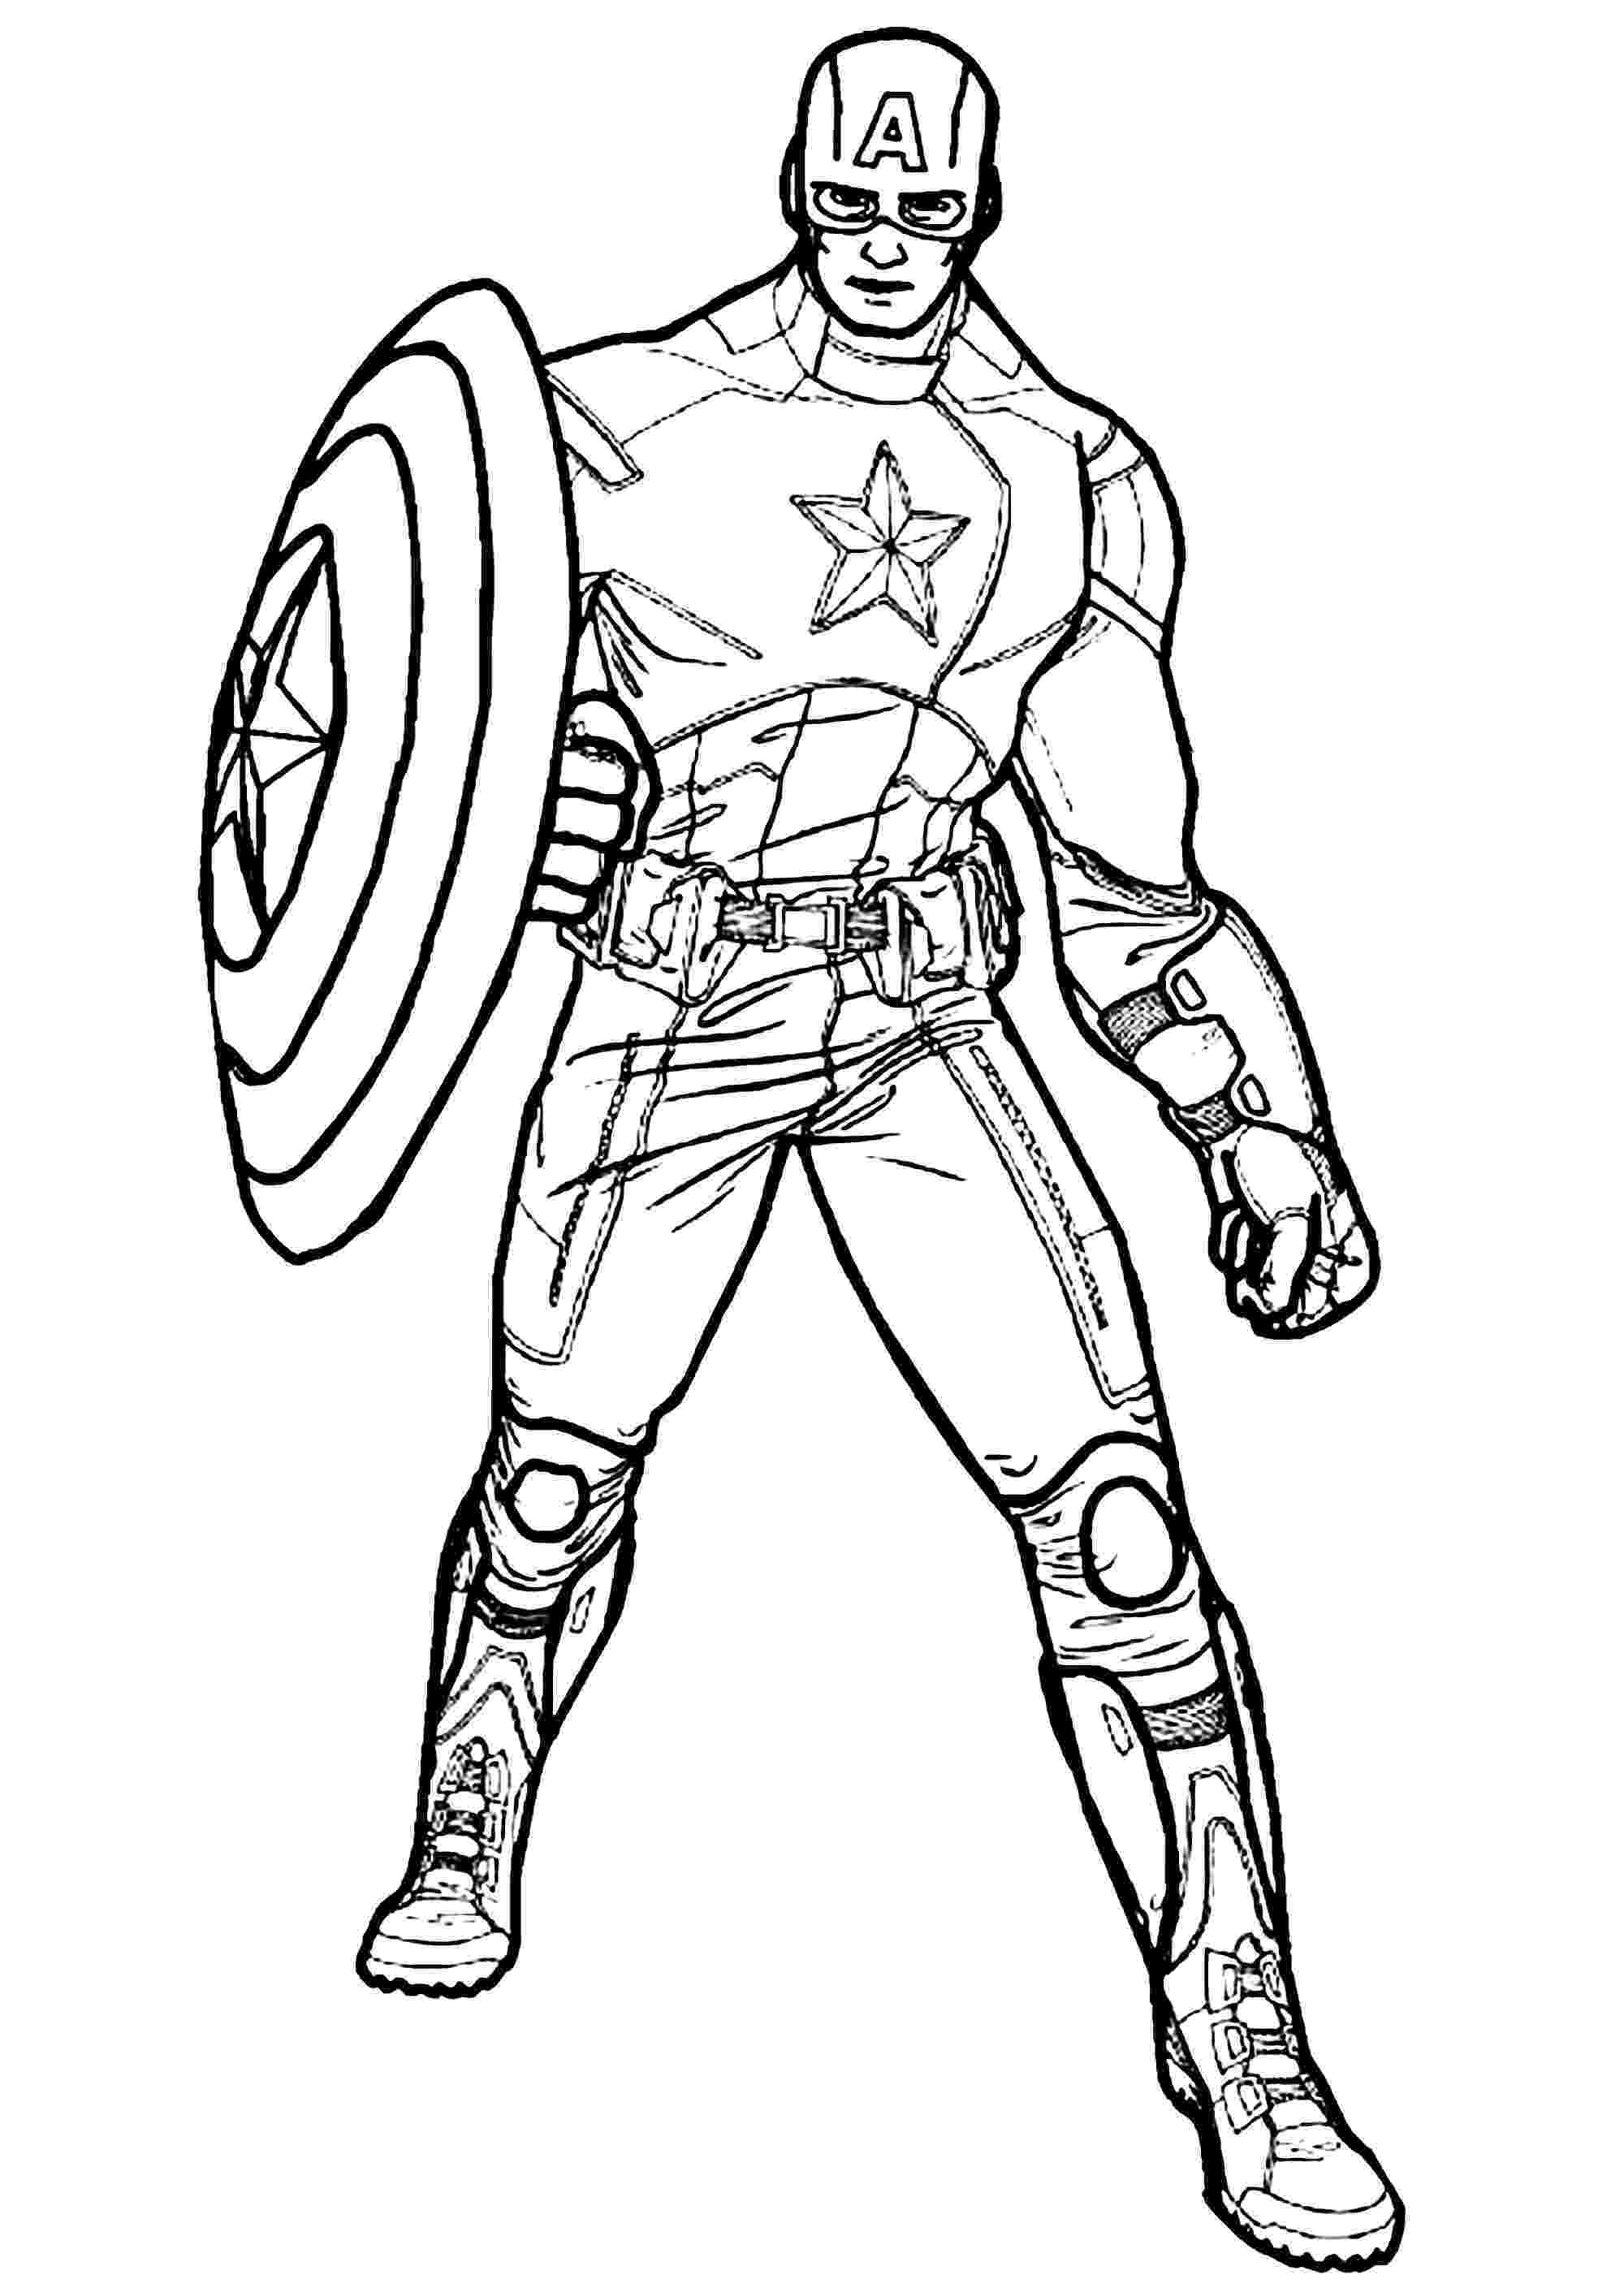 captain america colouring pages captain america captain america kids coloring pages america pages colouring captain